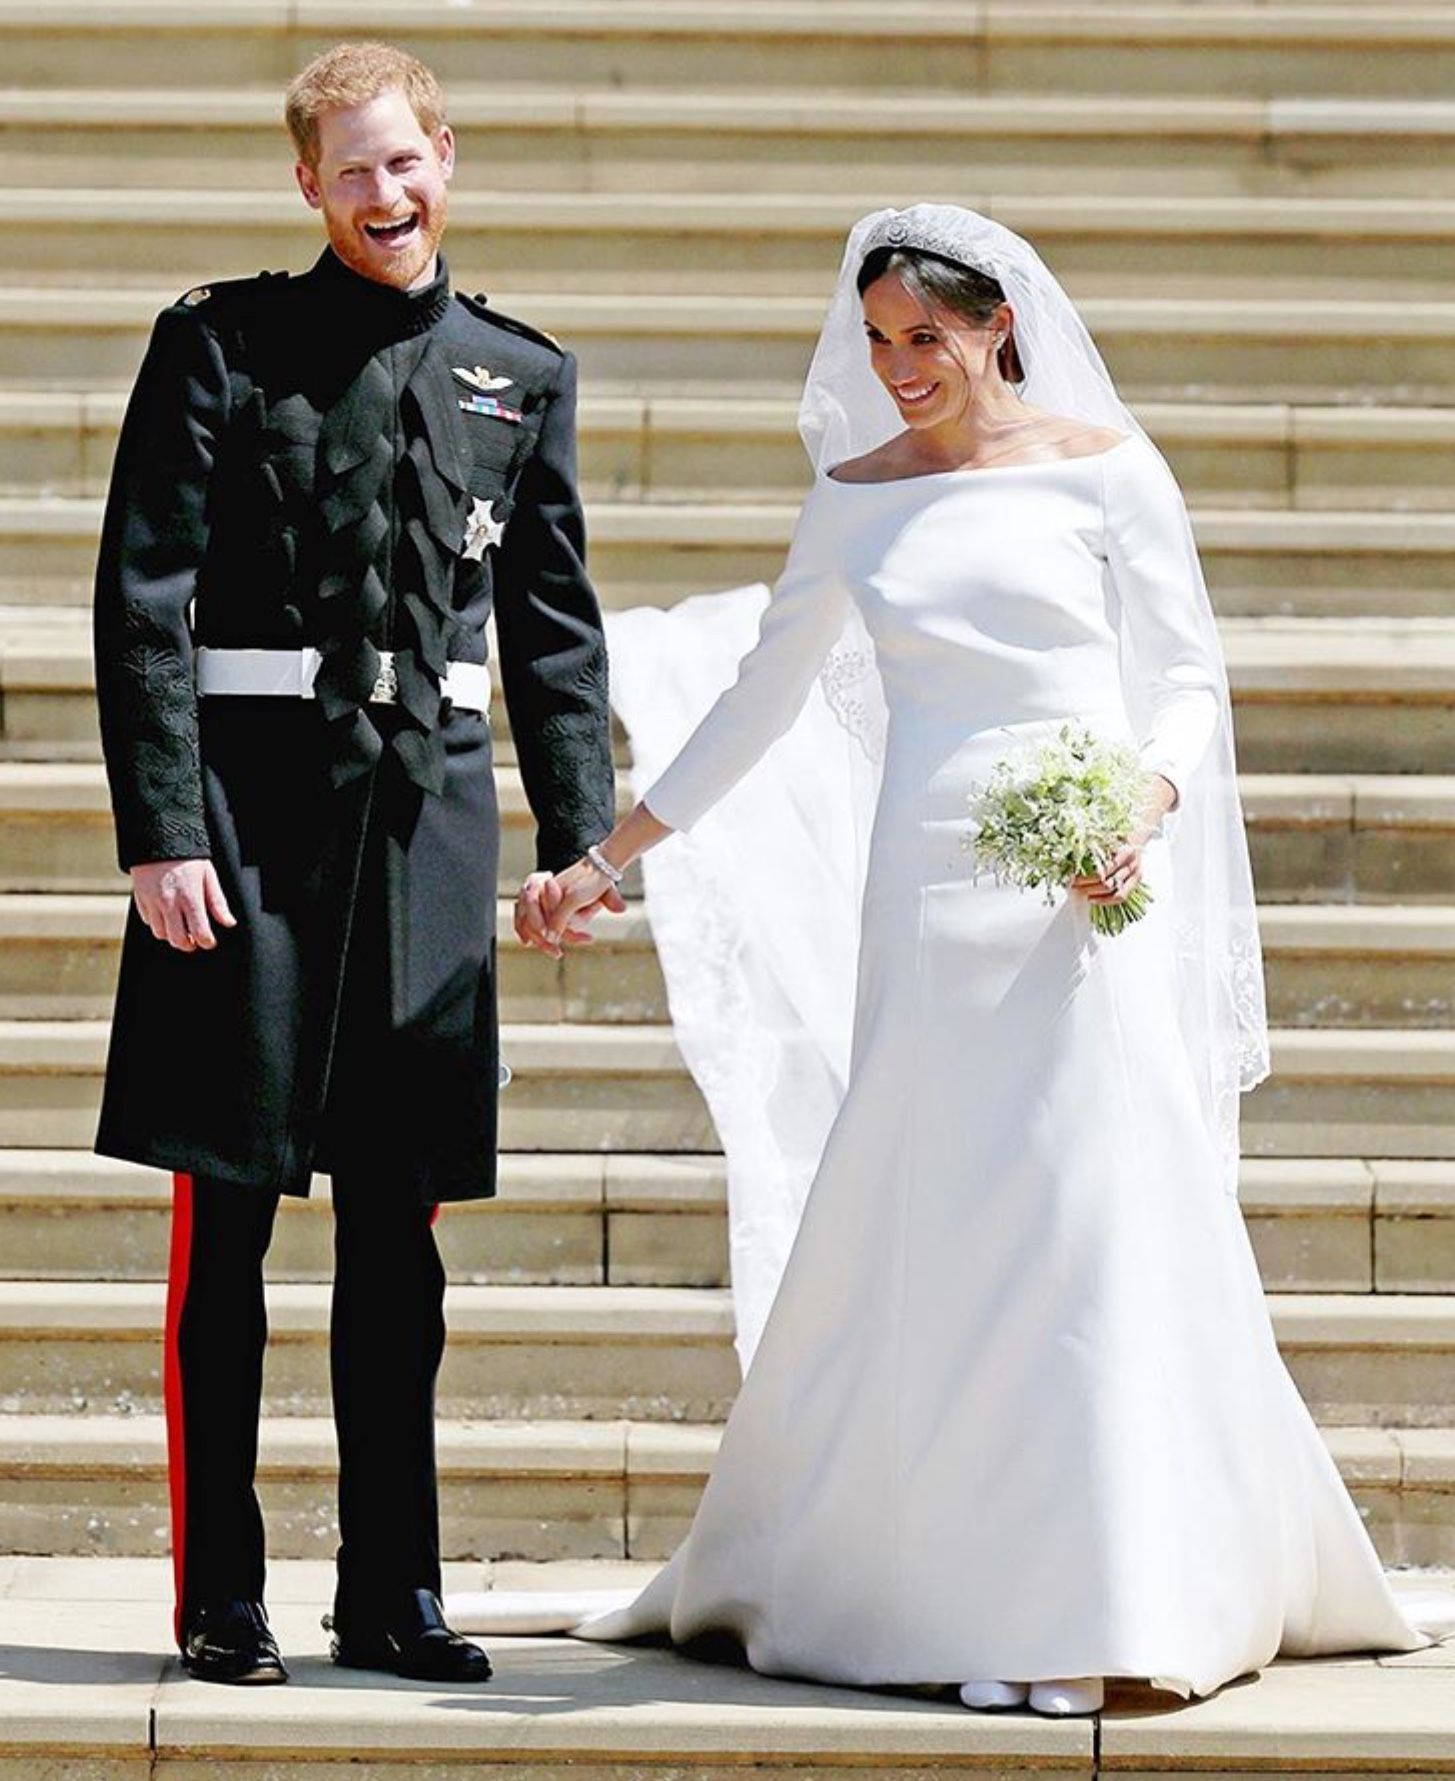 the duke and duchess of sussex wedding meghan markle wedding dress celebrity wedding dresses harry wedding meghan markle wedding dress